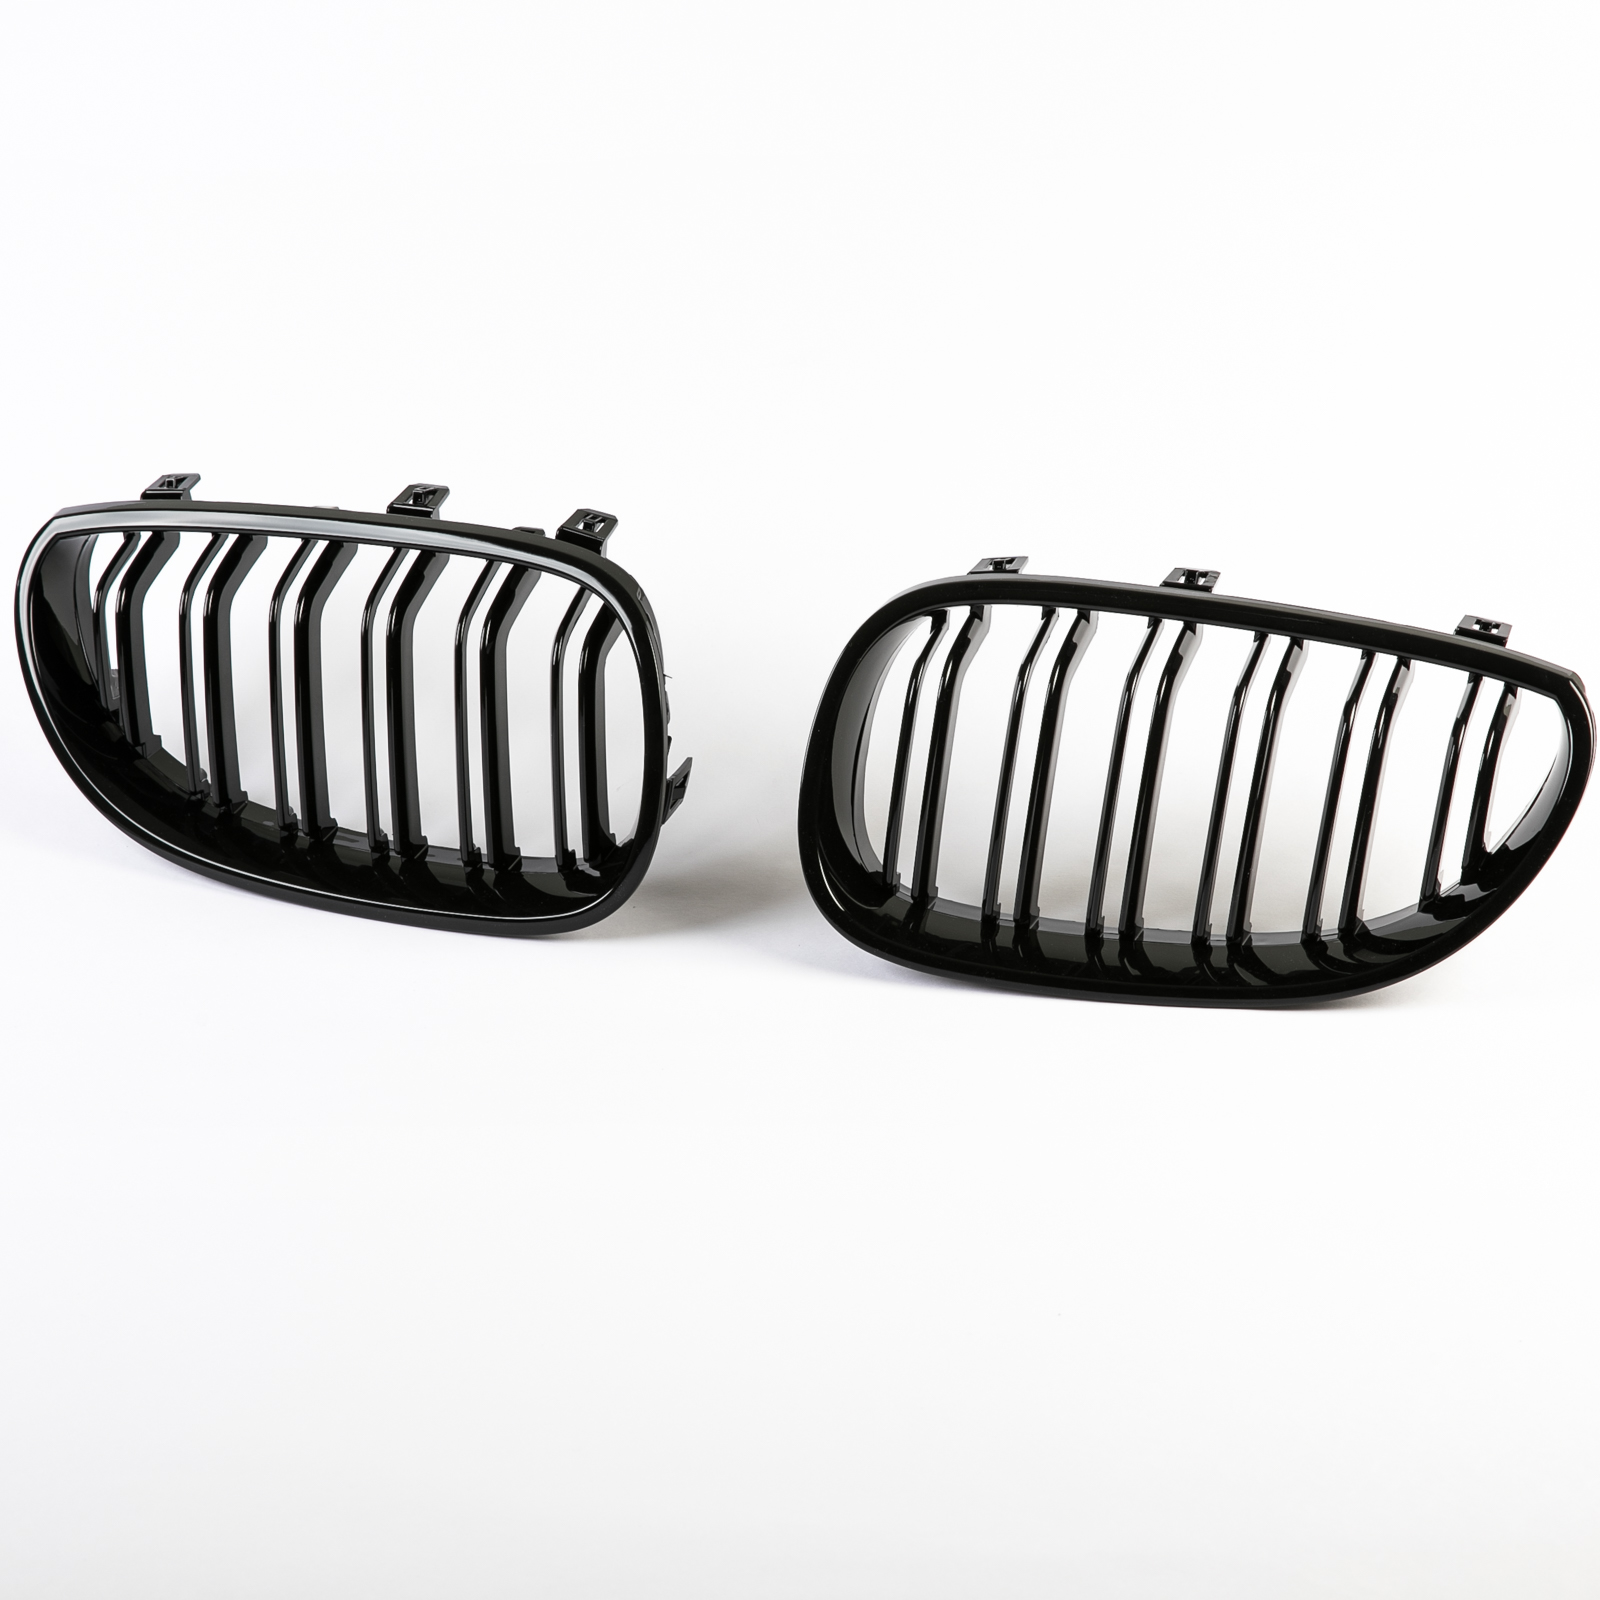 Shiny Gloss Black M Look Double Rib Front Bumper Kidney Grille For BMW E60 E61 04-09